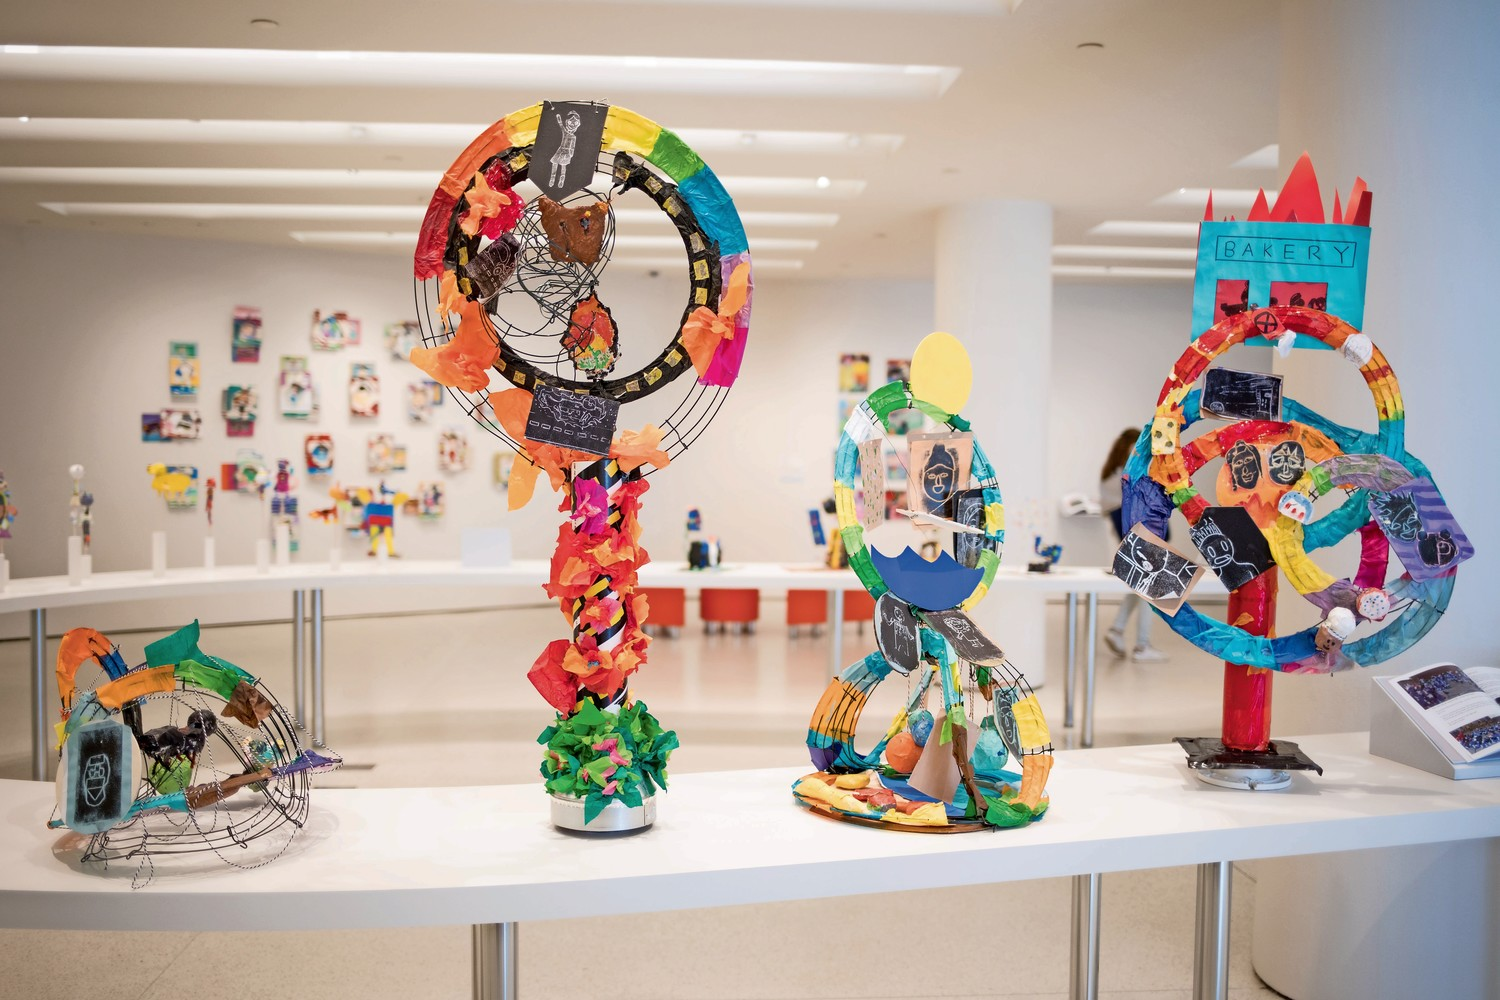 Sixth-grade students at P.S. 86 explored the nature of how one character or event in a story can affect everything that comes after in a series of sculptures called 'Hanging in the Balance.' These sculptures are part of the group exhibition 'A Year with Children 2018,' which is on display at the Guggenheim Museum until June 13.